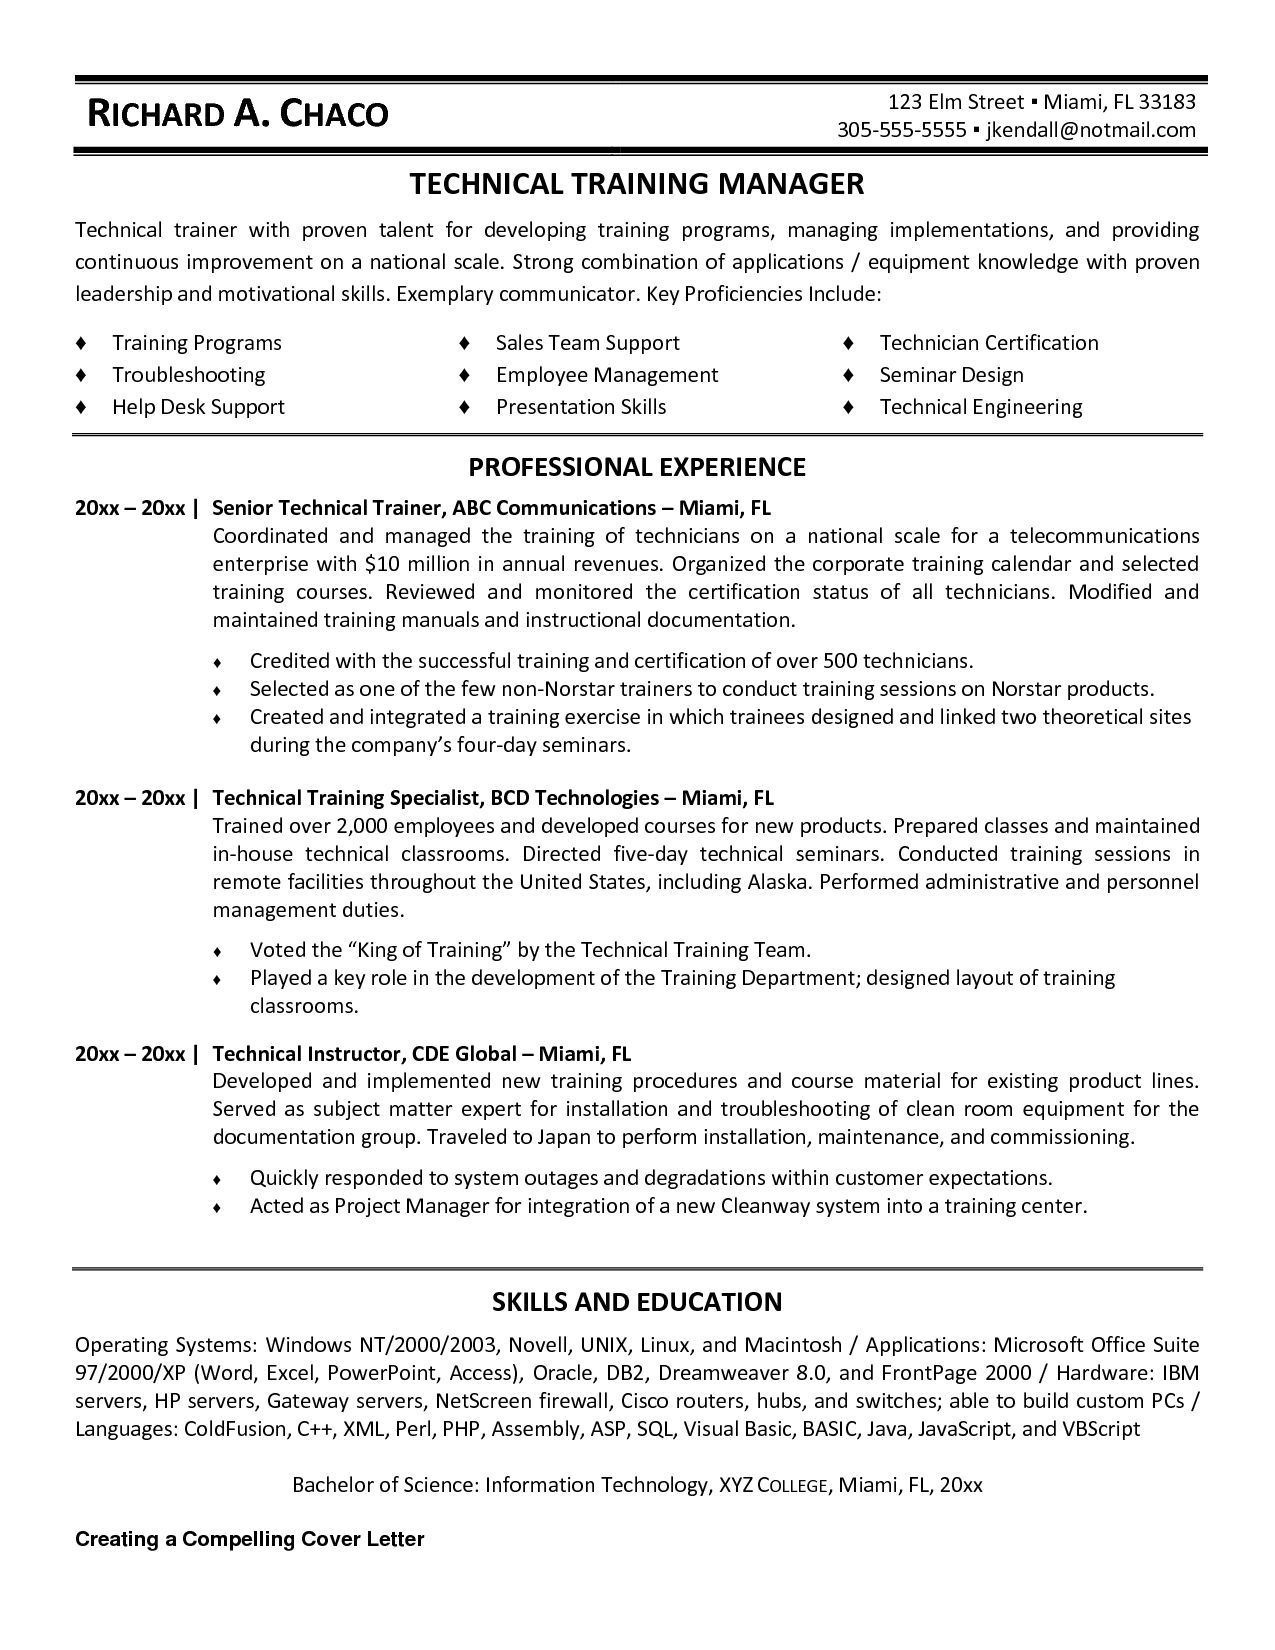 Genial Personal Trainer Resume Objective Personal Trainer Resume Sample Gallery  Photos